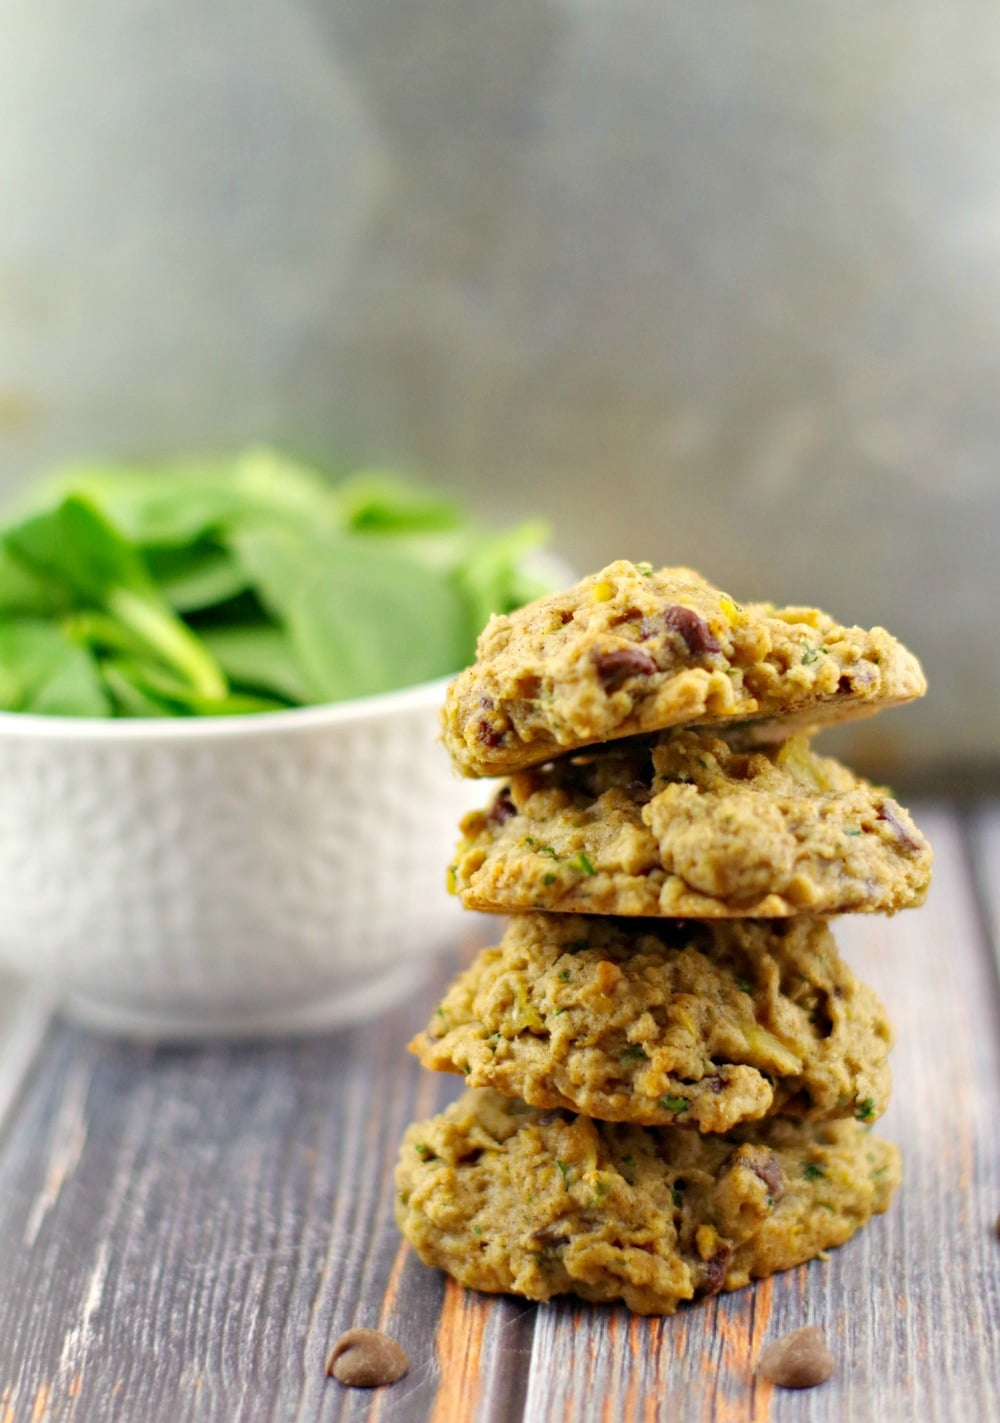 Award-Winning Tropical Green Chocolate Chip cookies #healthy chocolate chip cookie #spinach | foodmeanderings.com